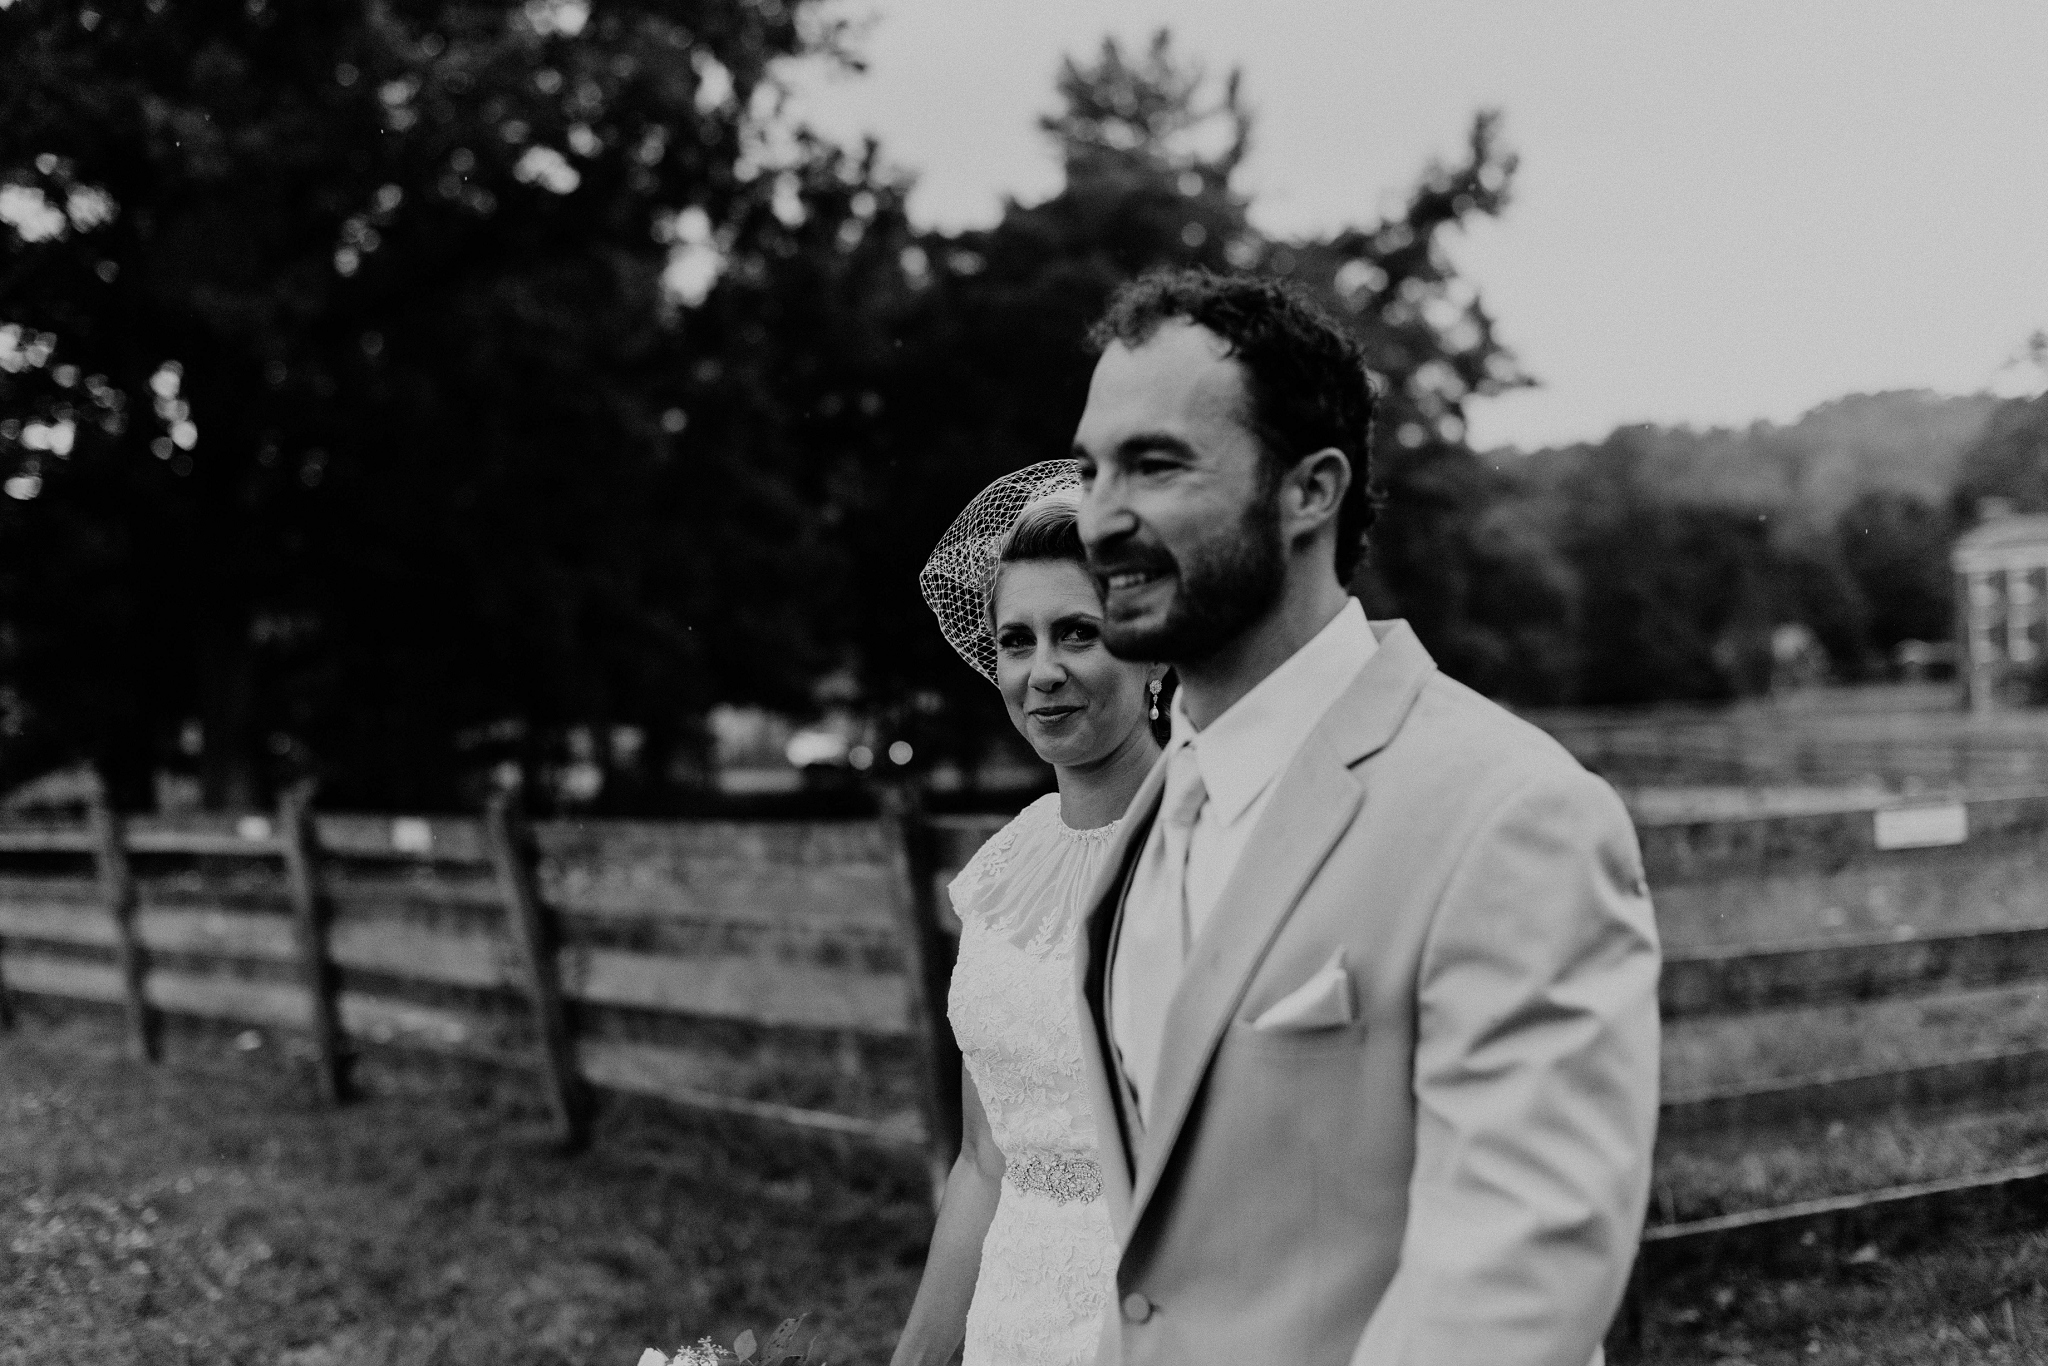 Hines-Hill-Farm-Cuyahoga-Valley-National-Park-Wedding_Emi+Andy_MJPHOTO-111.jpg